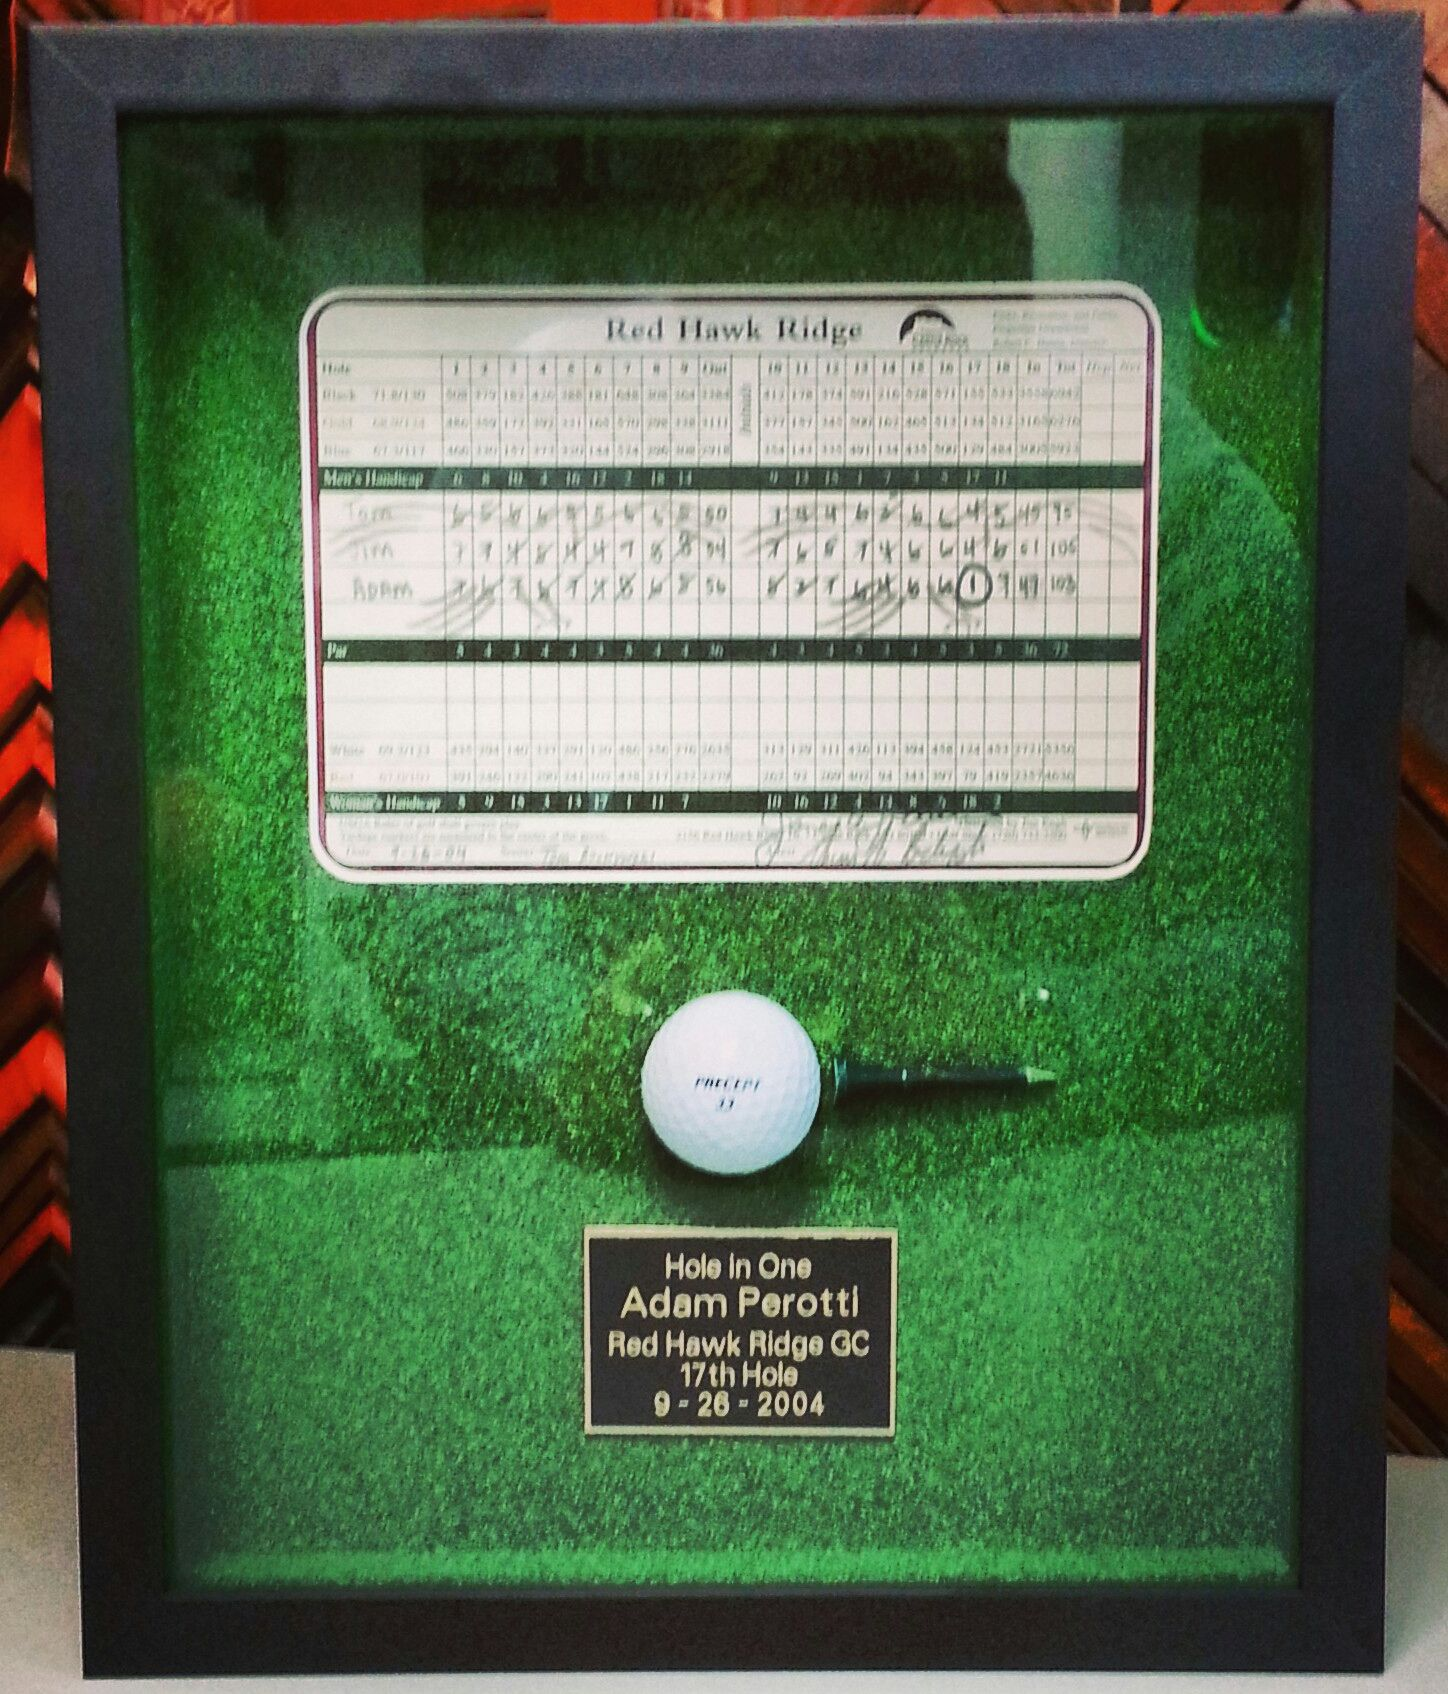 How To Frame A Hole In One Ball Bing Imagesi Need To Make This For